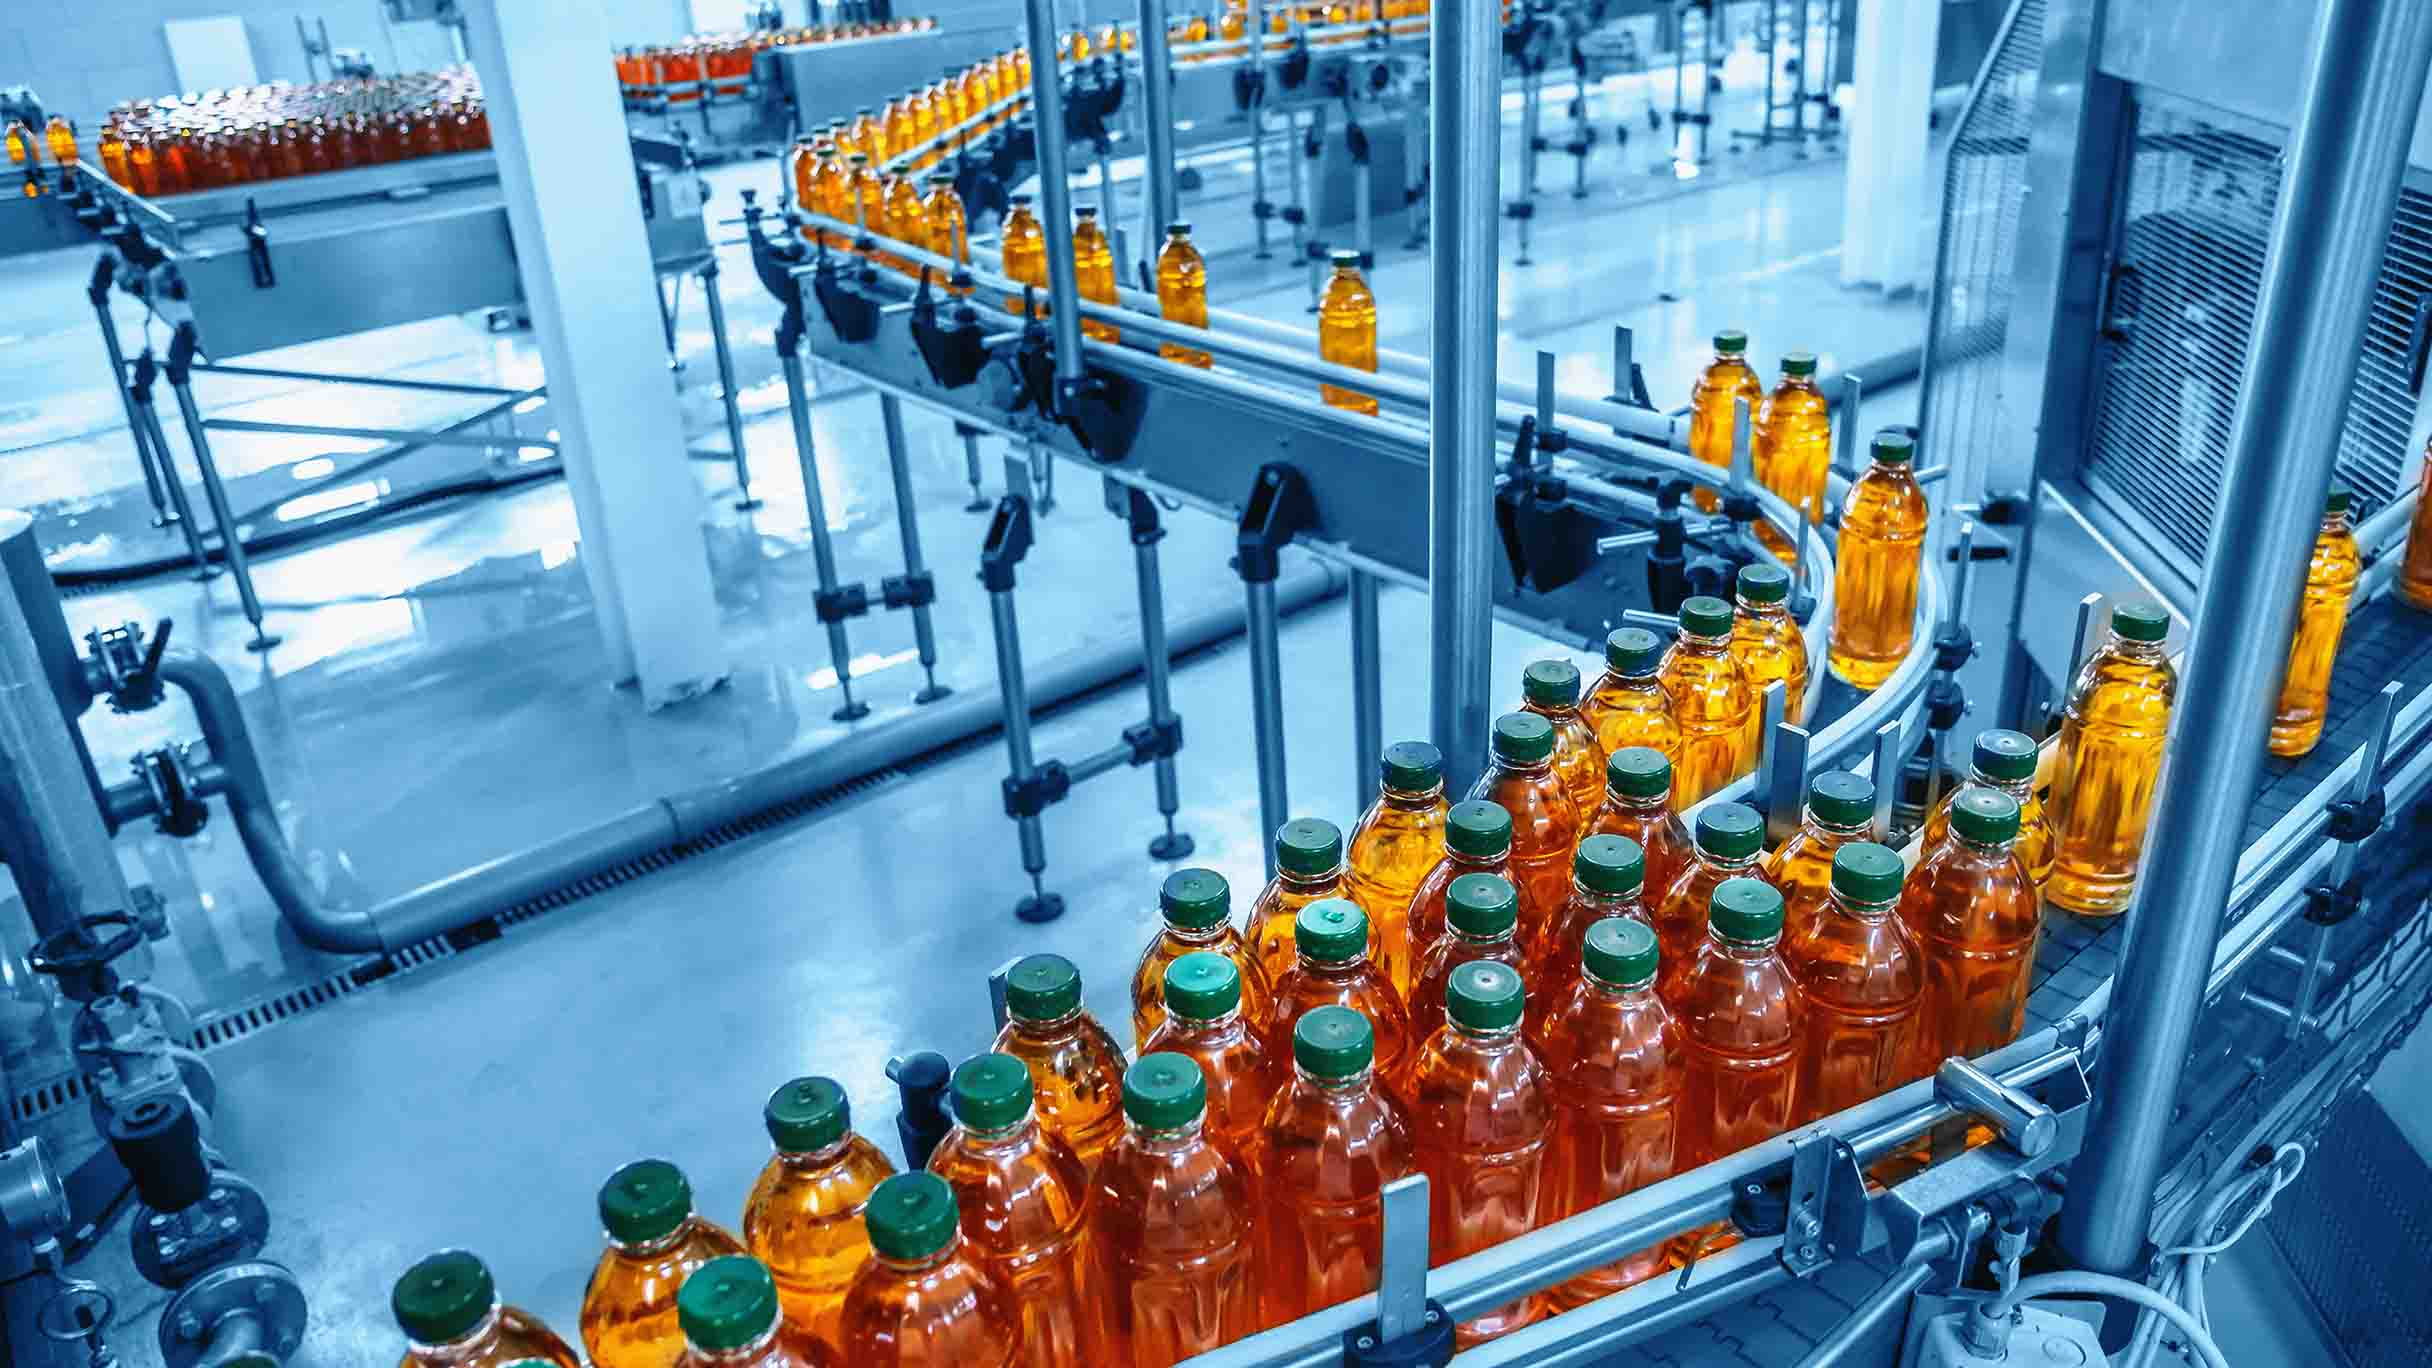 food & beverage manufacturing changeovers can be optimized with eSOPs